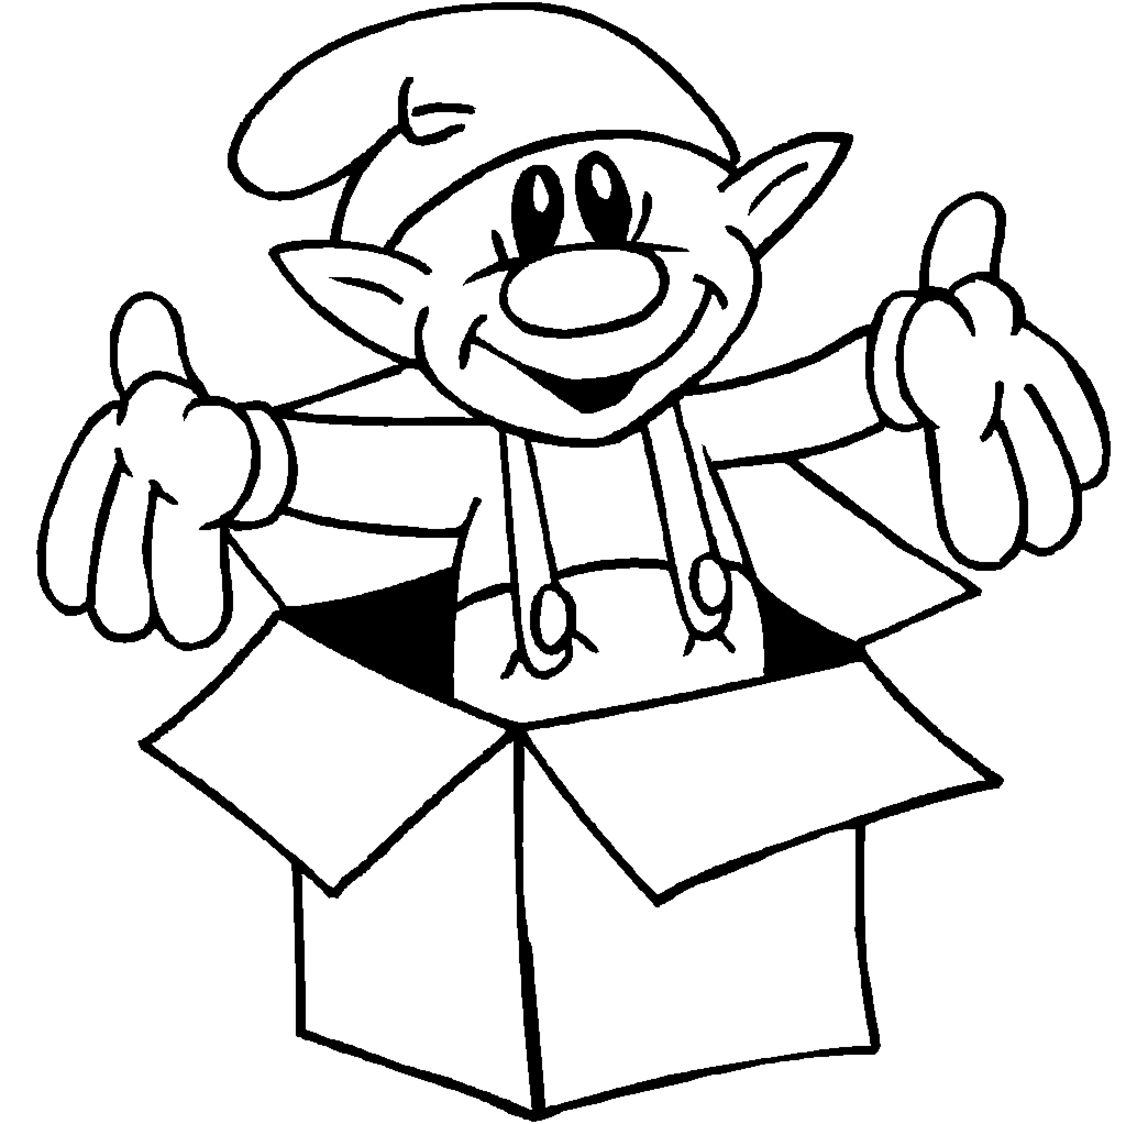 Christmas Coloring Pages Of Elves With Elf